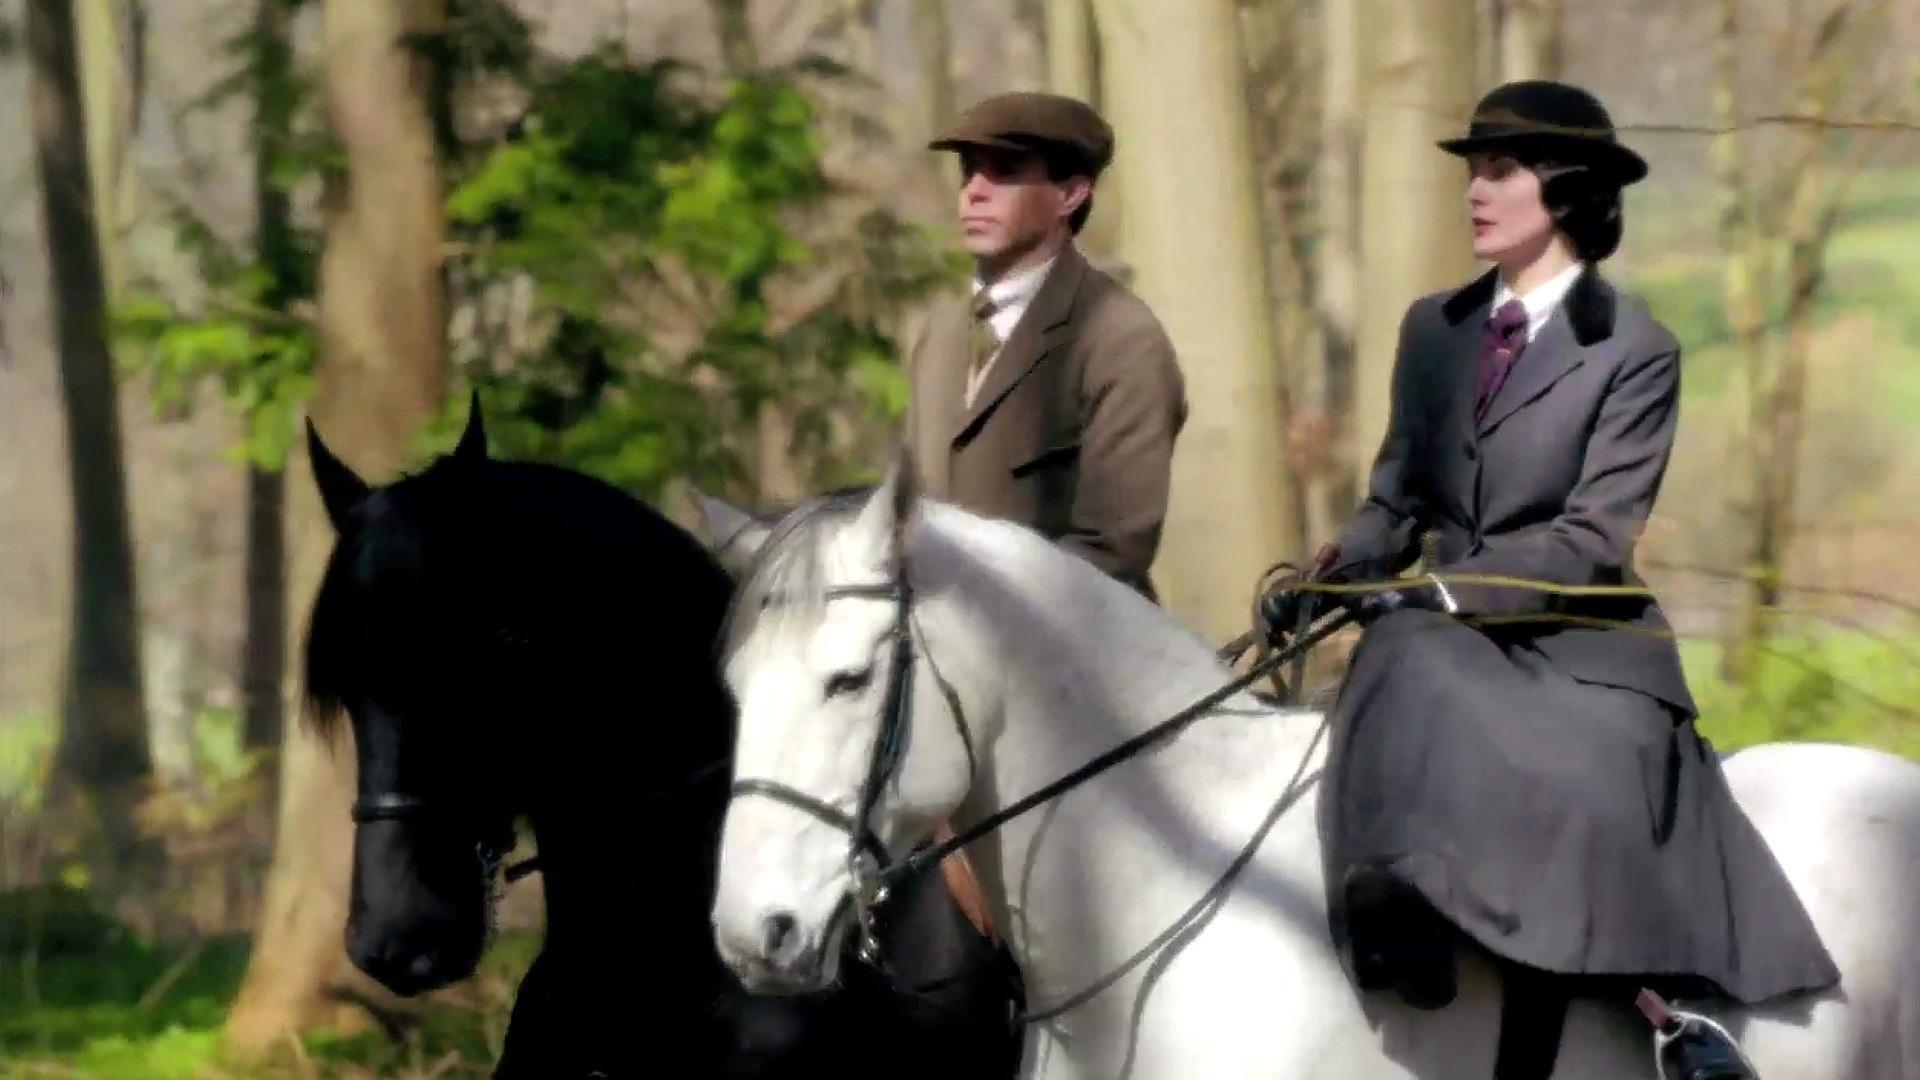 Downton Abbey, Season 4: A Scene from Episode 2 image